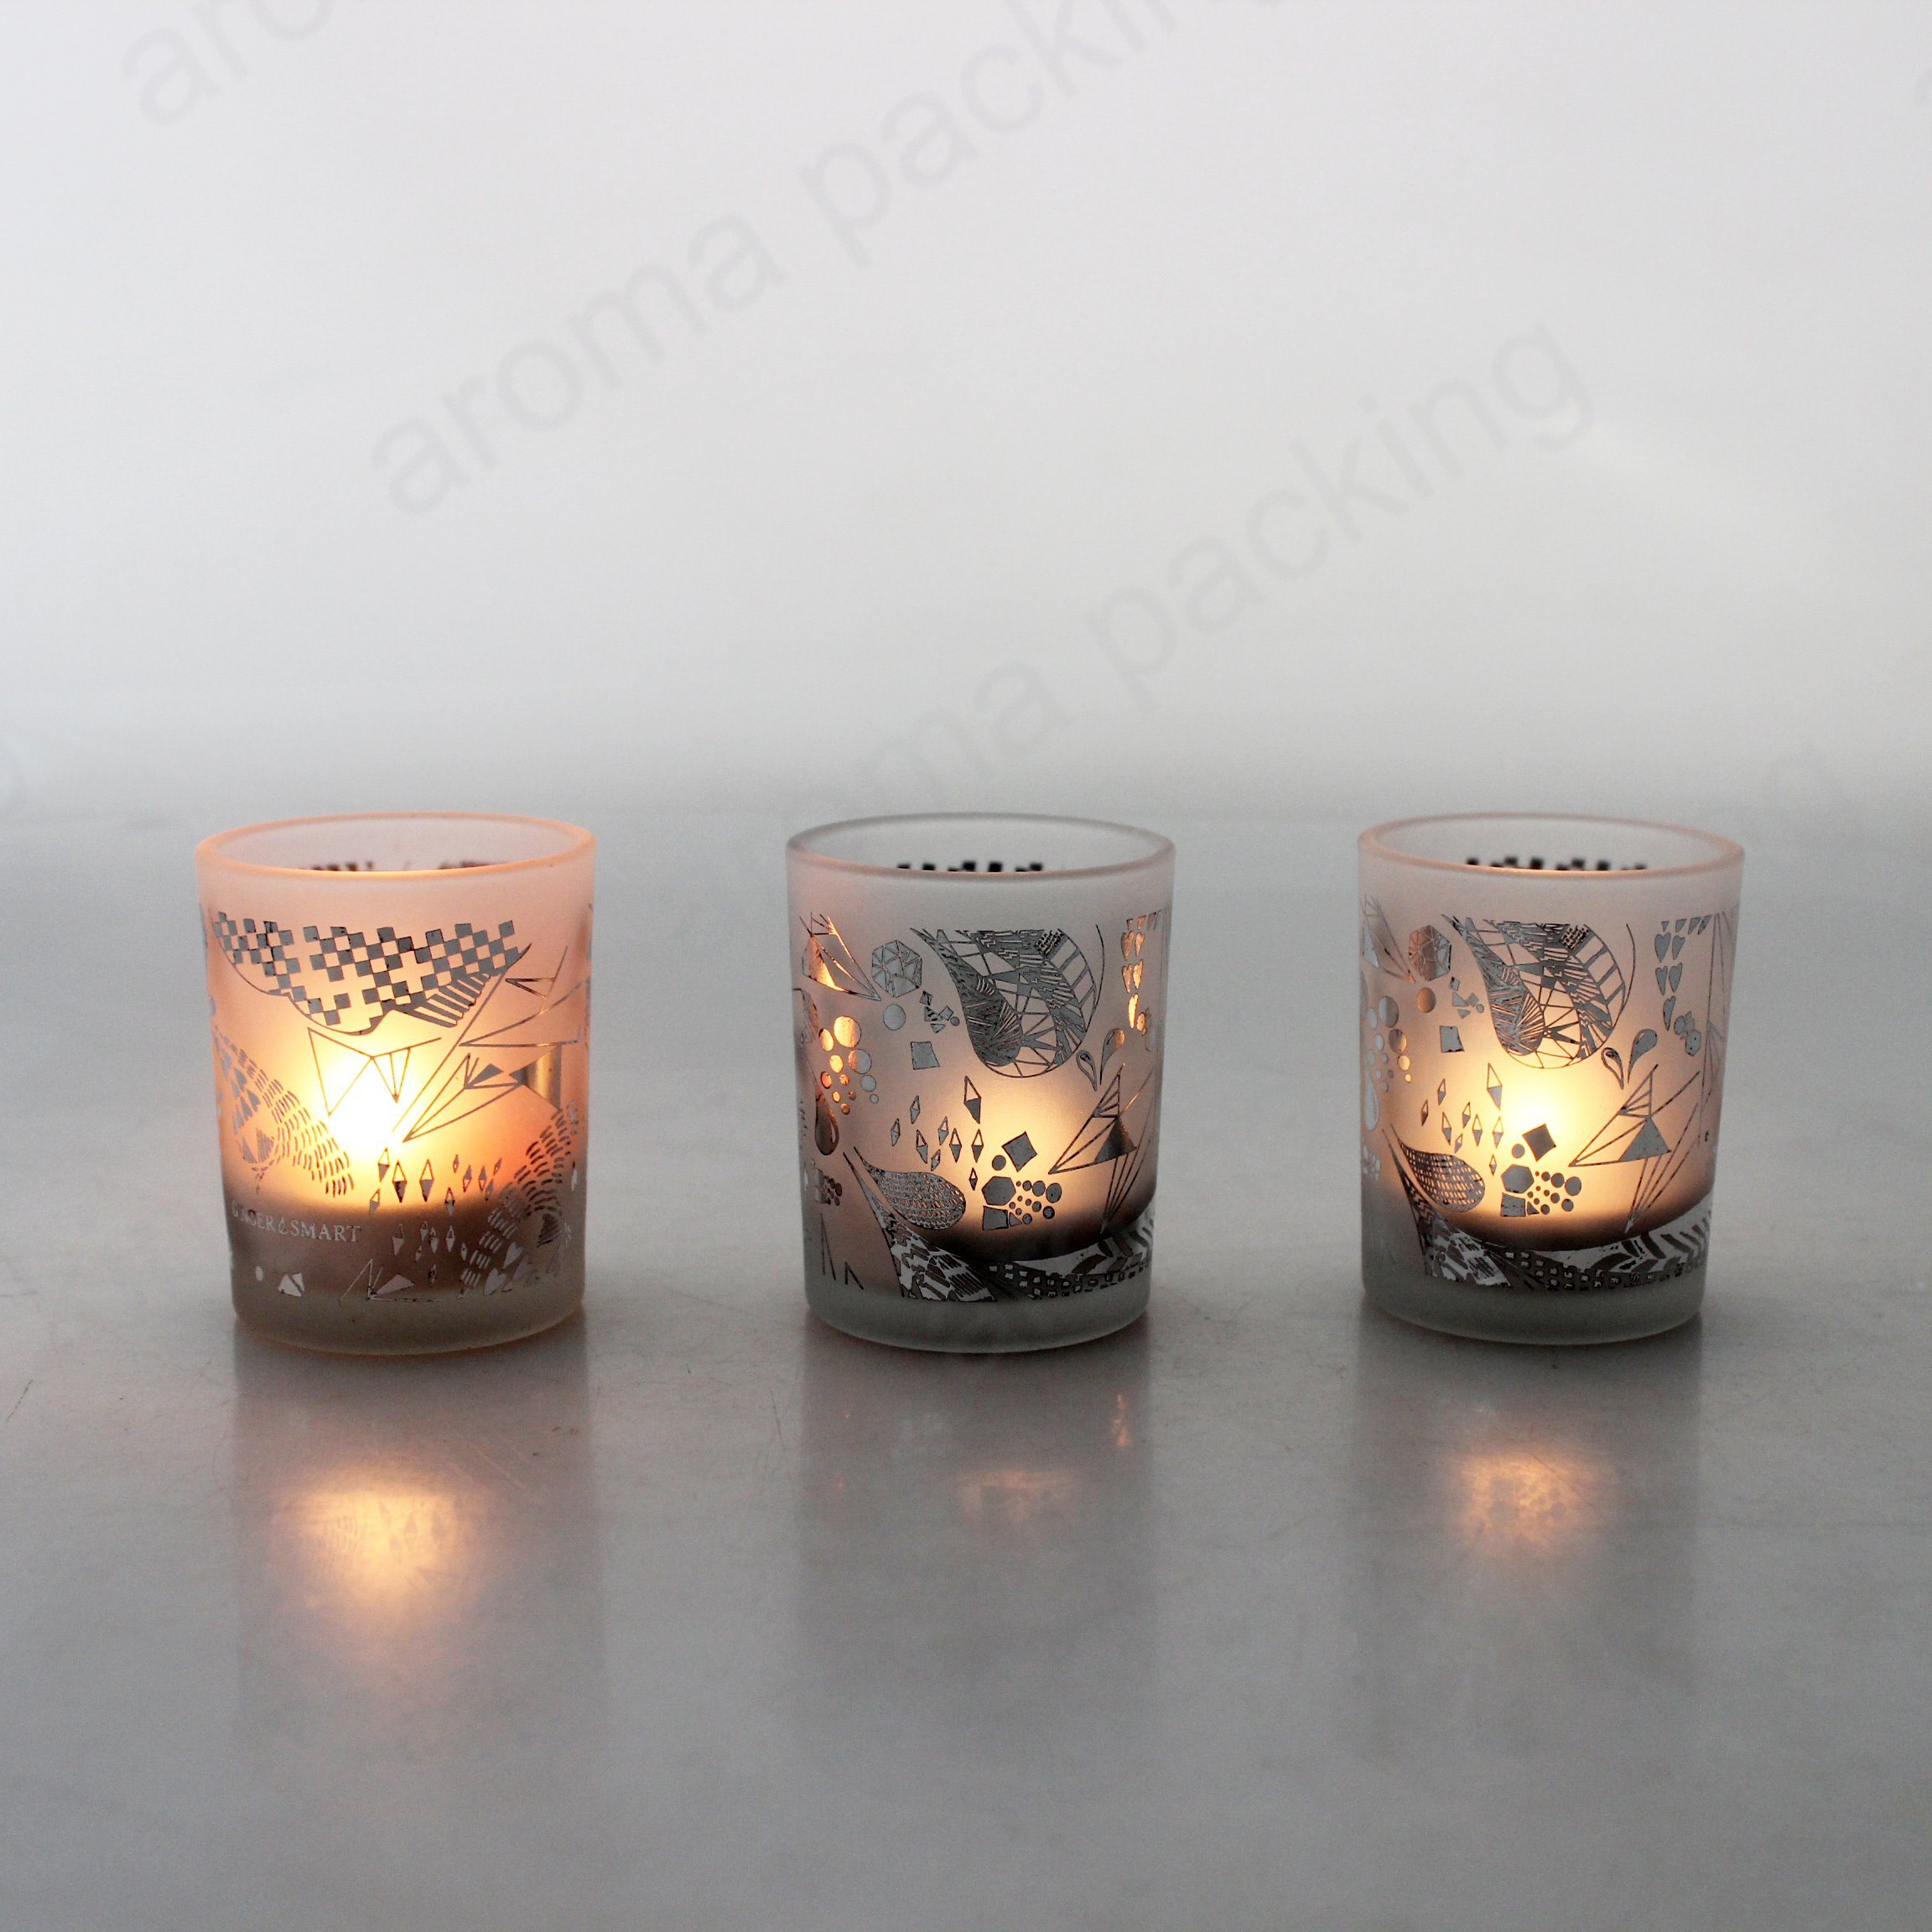 Wholesale Fashion Custom Christmas Glass Jar Candle Holders With Lids China Candle Holders And Candle Holder Manufactures Price Made In China Com